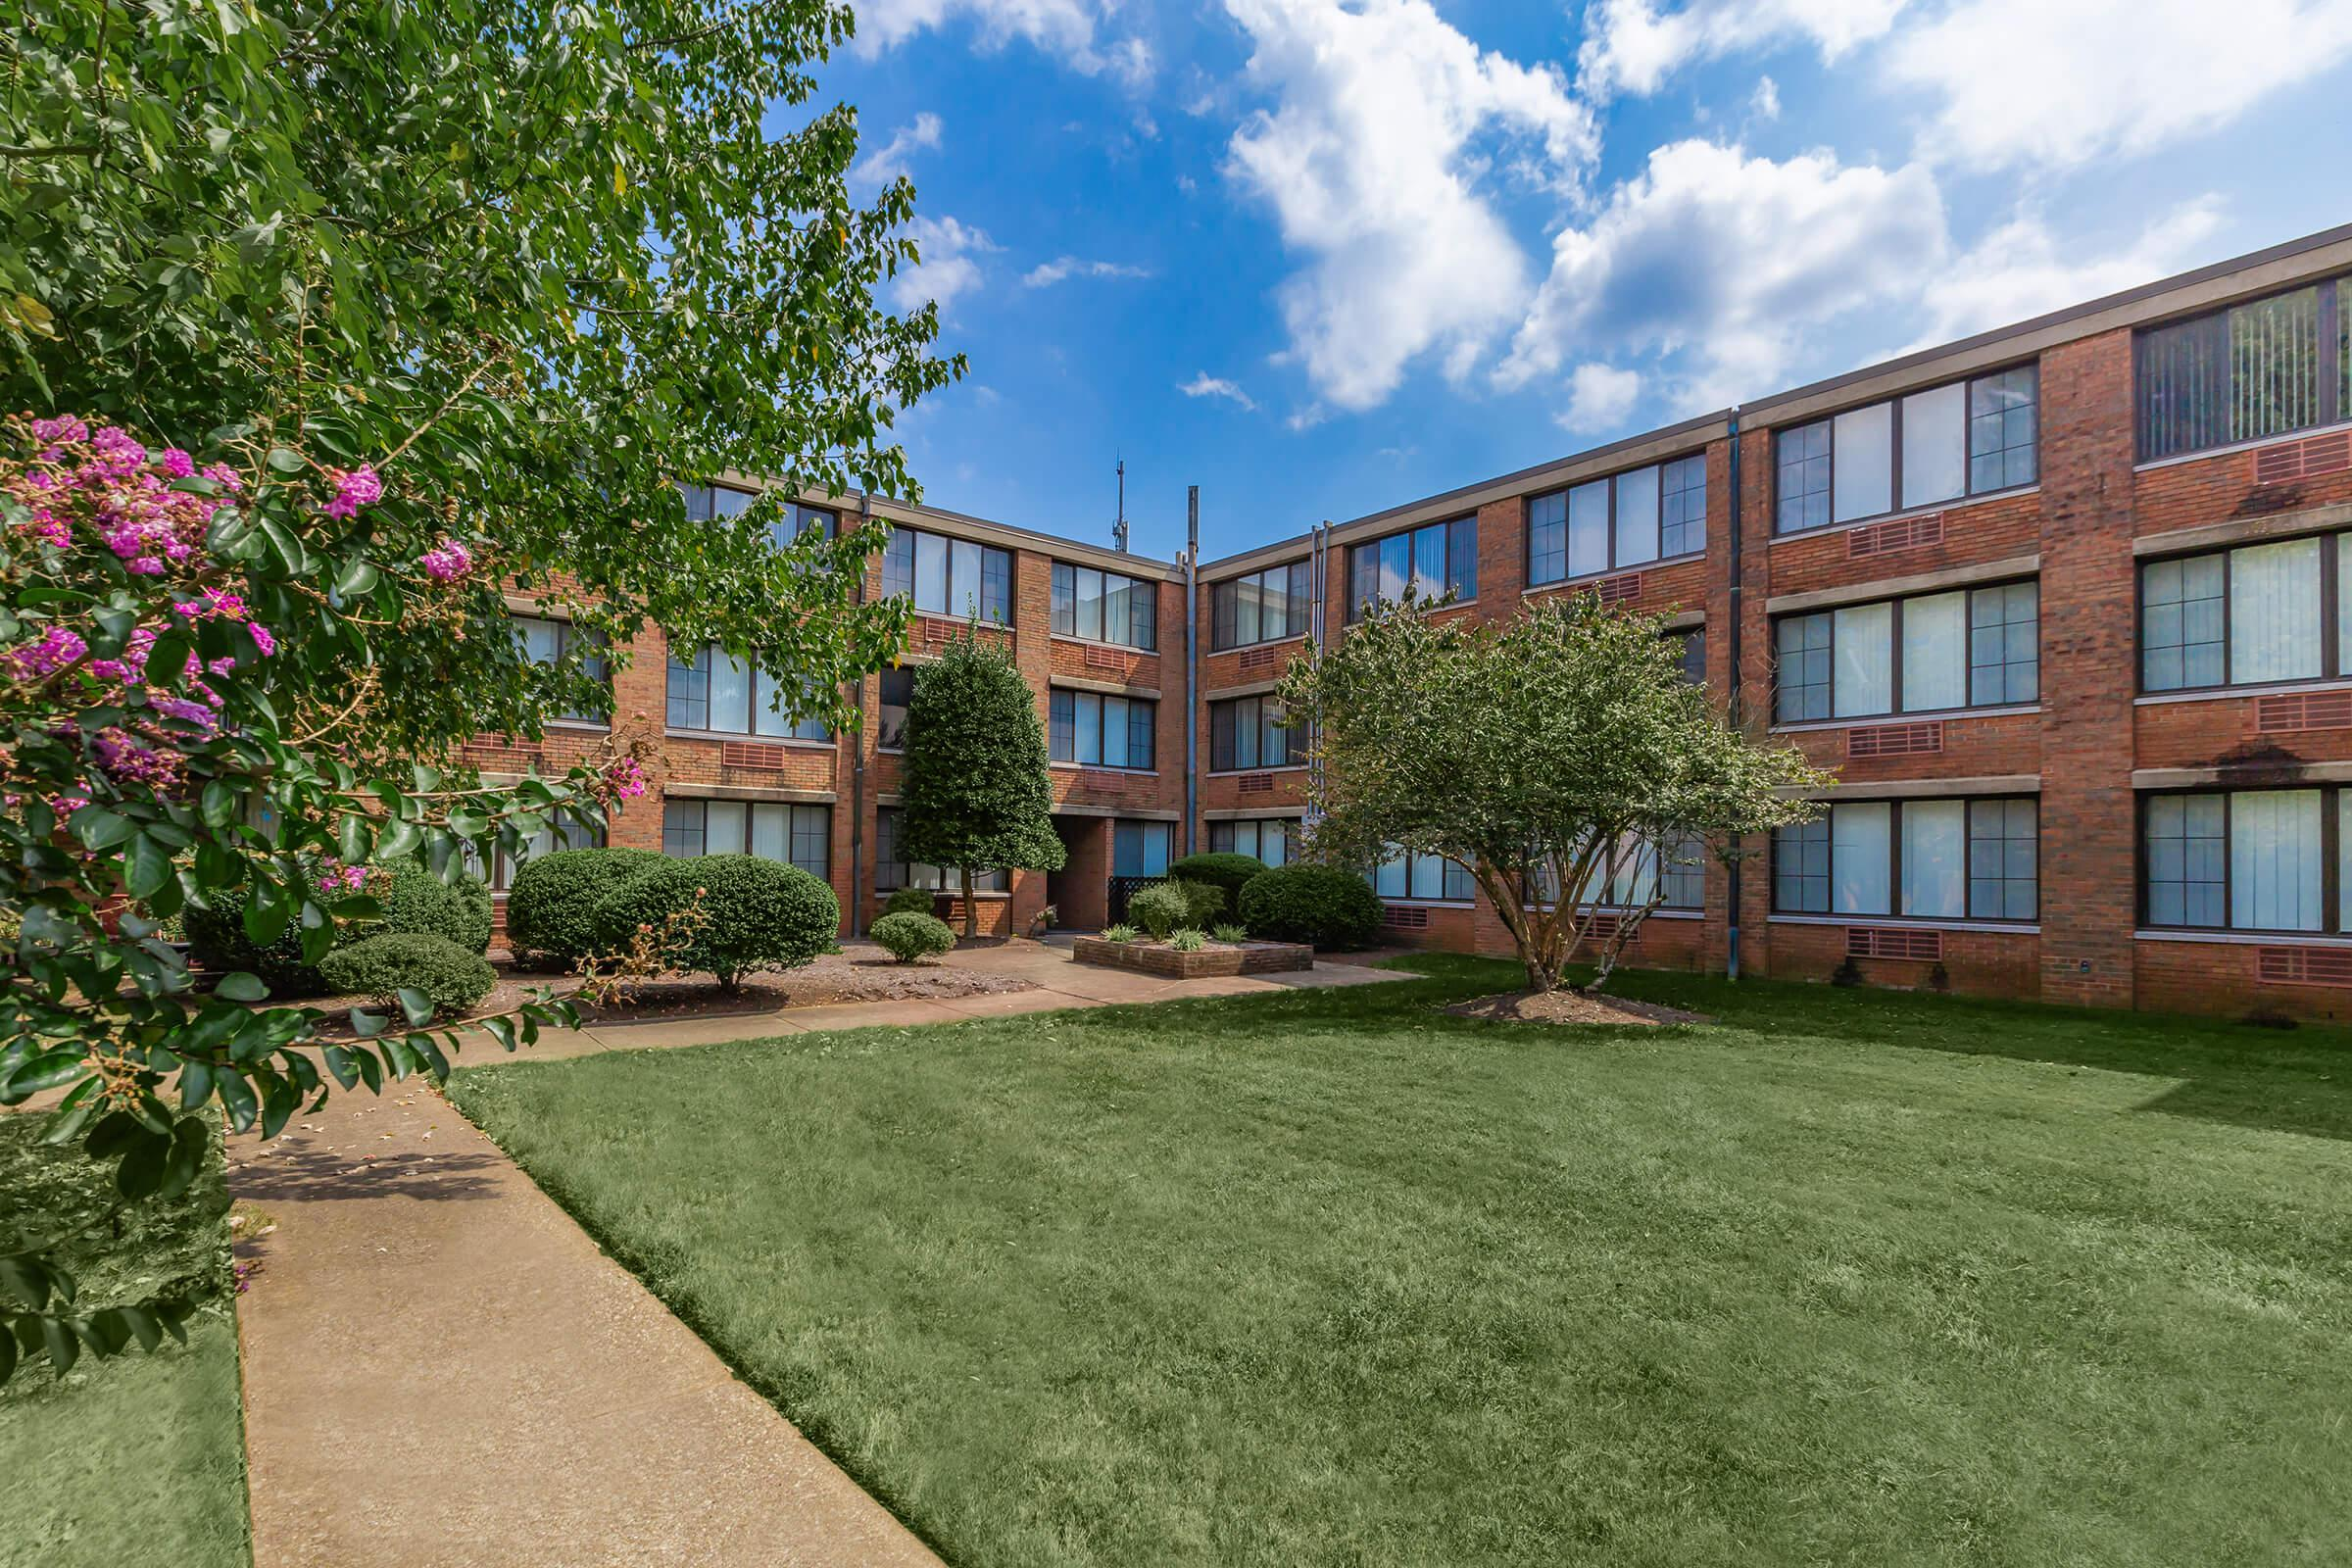 ONE BR APARTMENT HOMES FOR RENT IN KNOXVILLE, TN